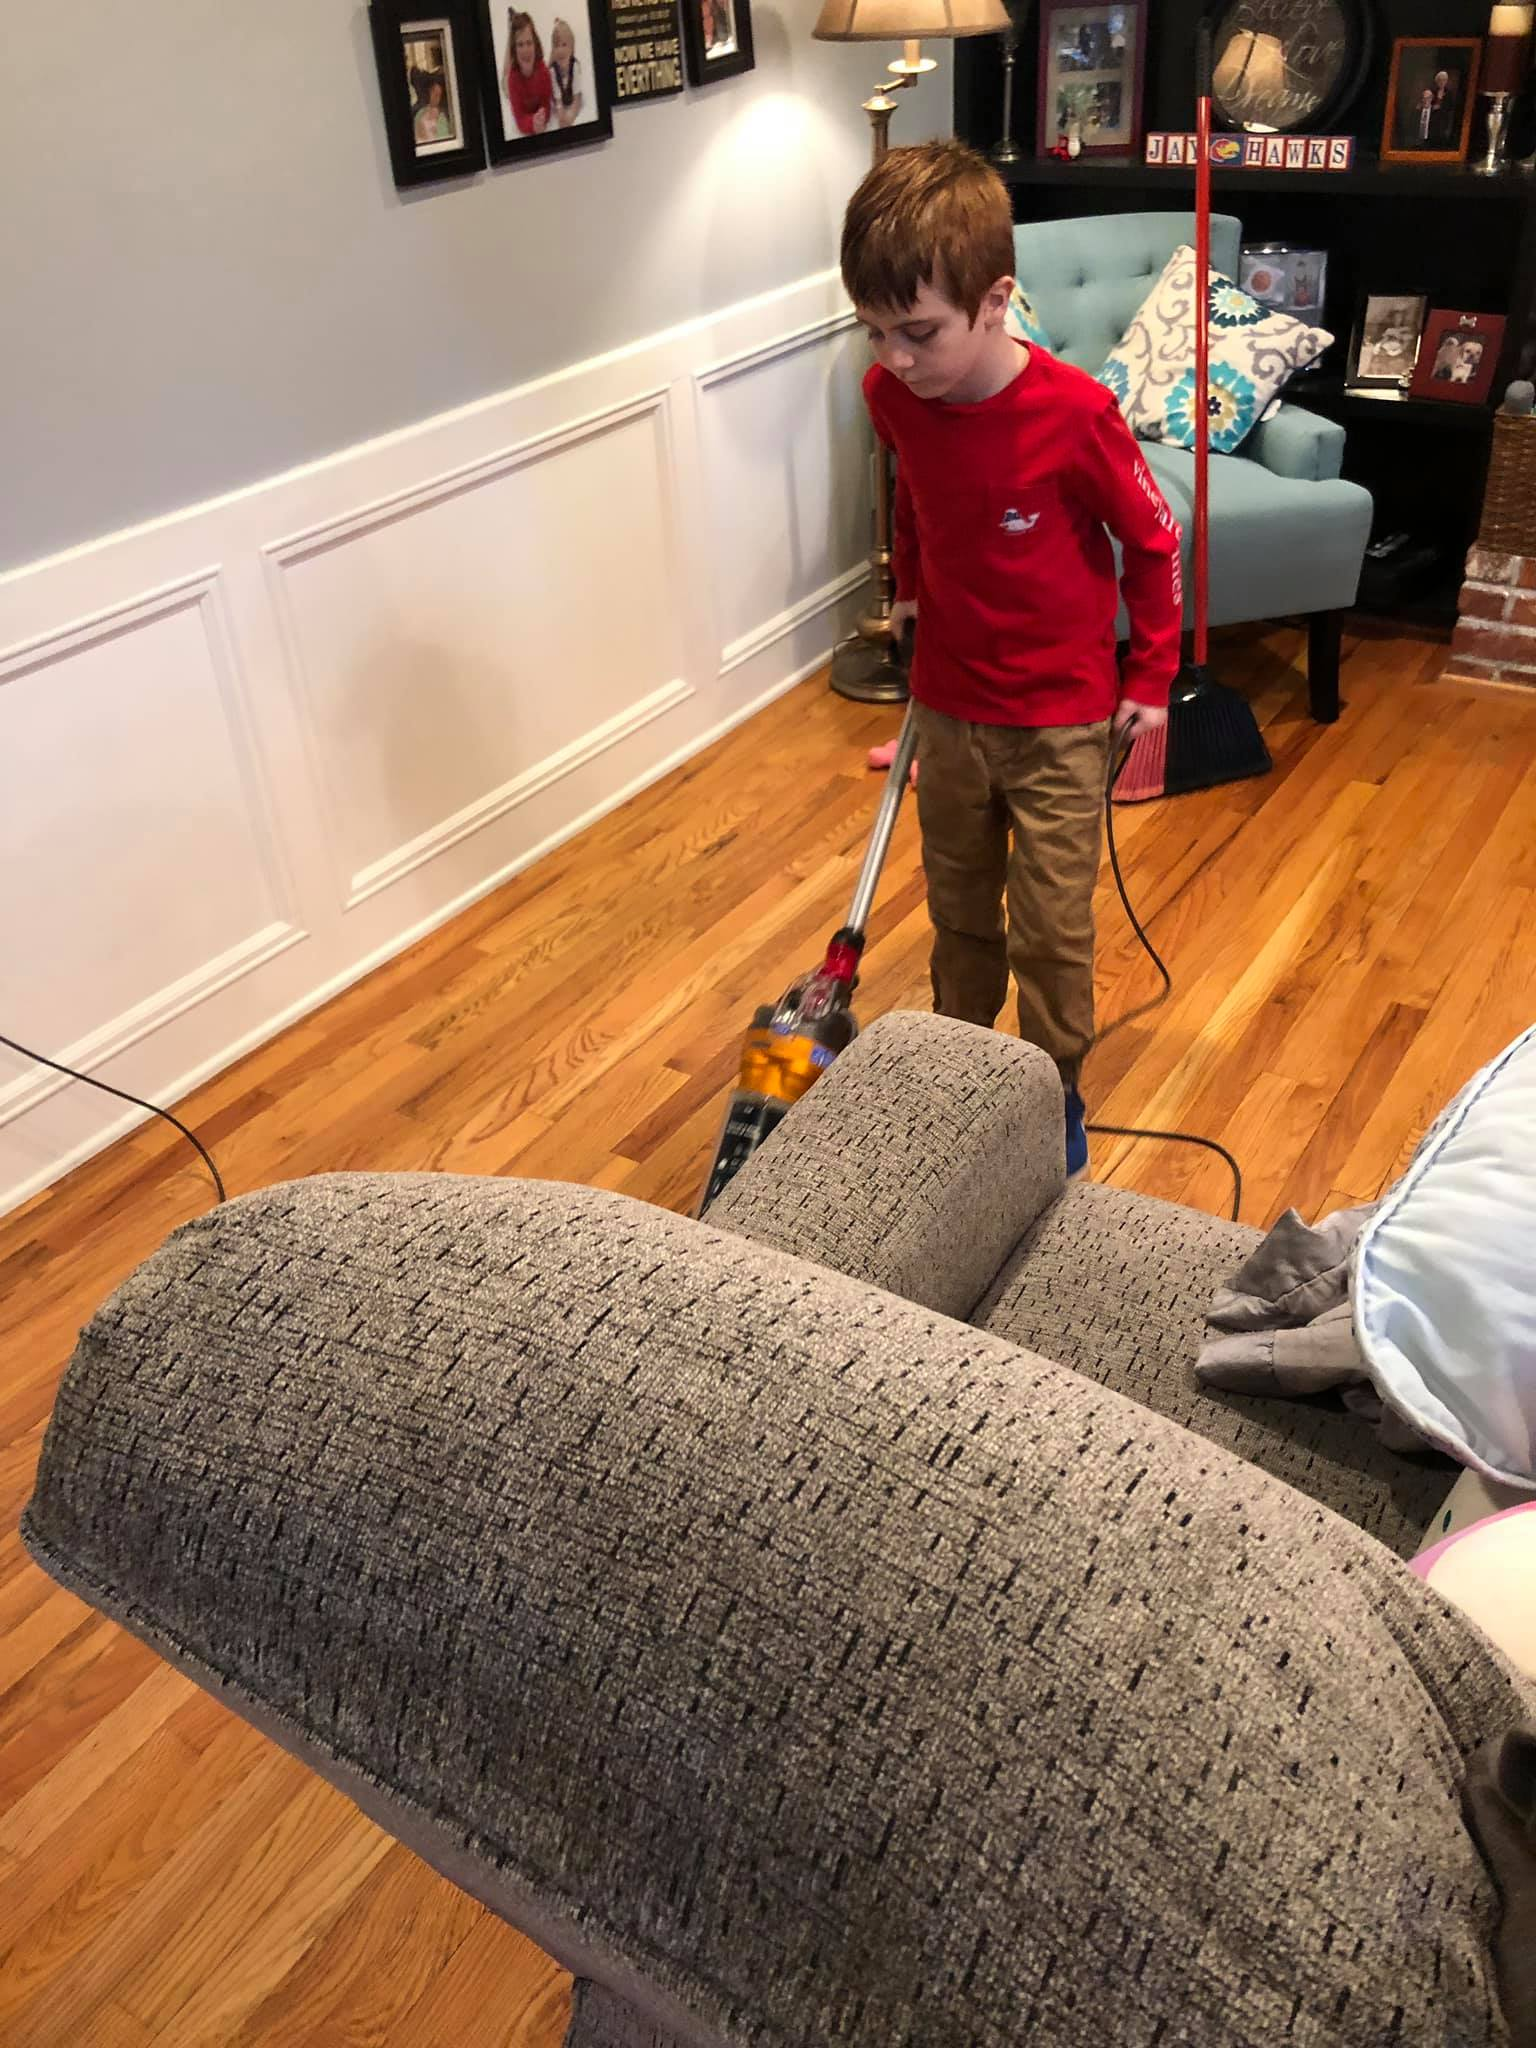 Braxton is being his mom's legs since her ankle surgery. What a BIG HELP he is! Working around the house makes you a VALUED member of the family. Find a way to help your mom or dad this weekend!   Thank you  , Braxton!